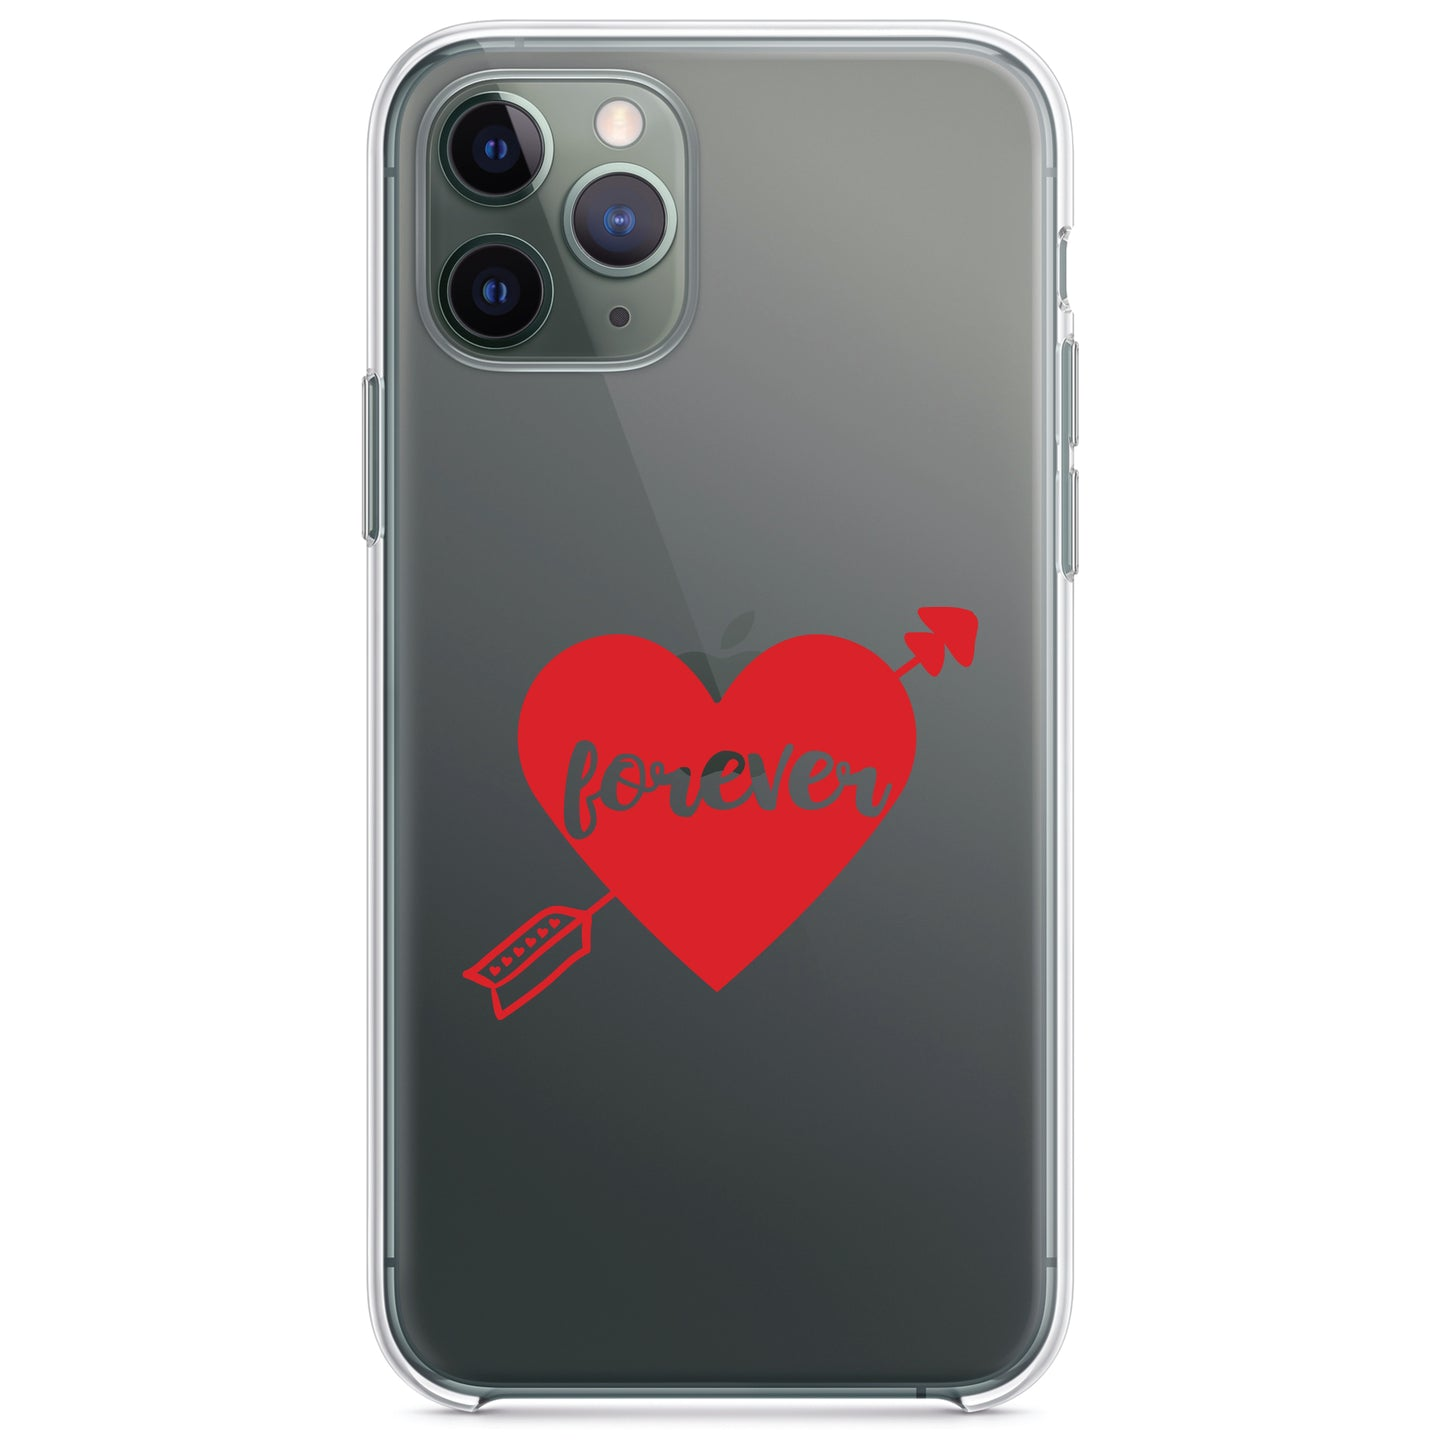 DistinctInk® Clear Shockproof Hybrid Case for Apple iPhone / Samsung Galaxy / Google Pixel - Heart Arrow Forever Valentine